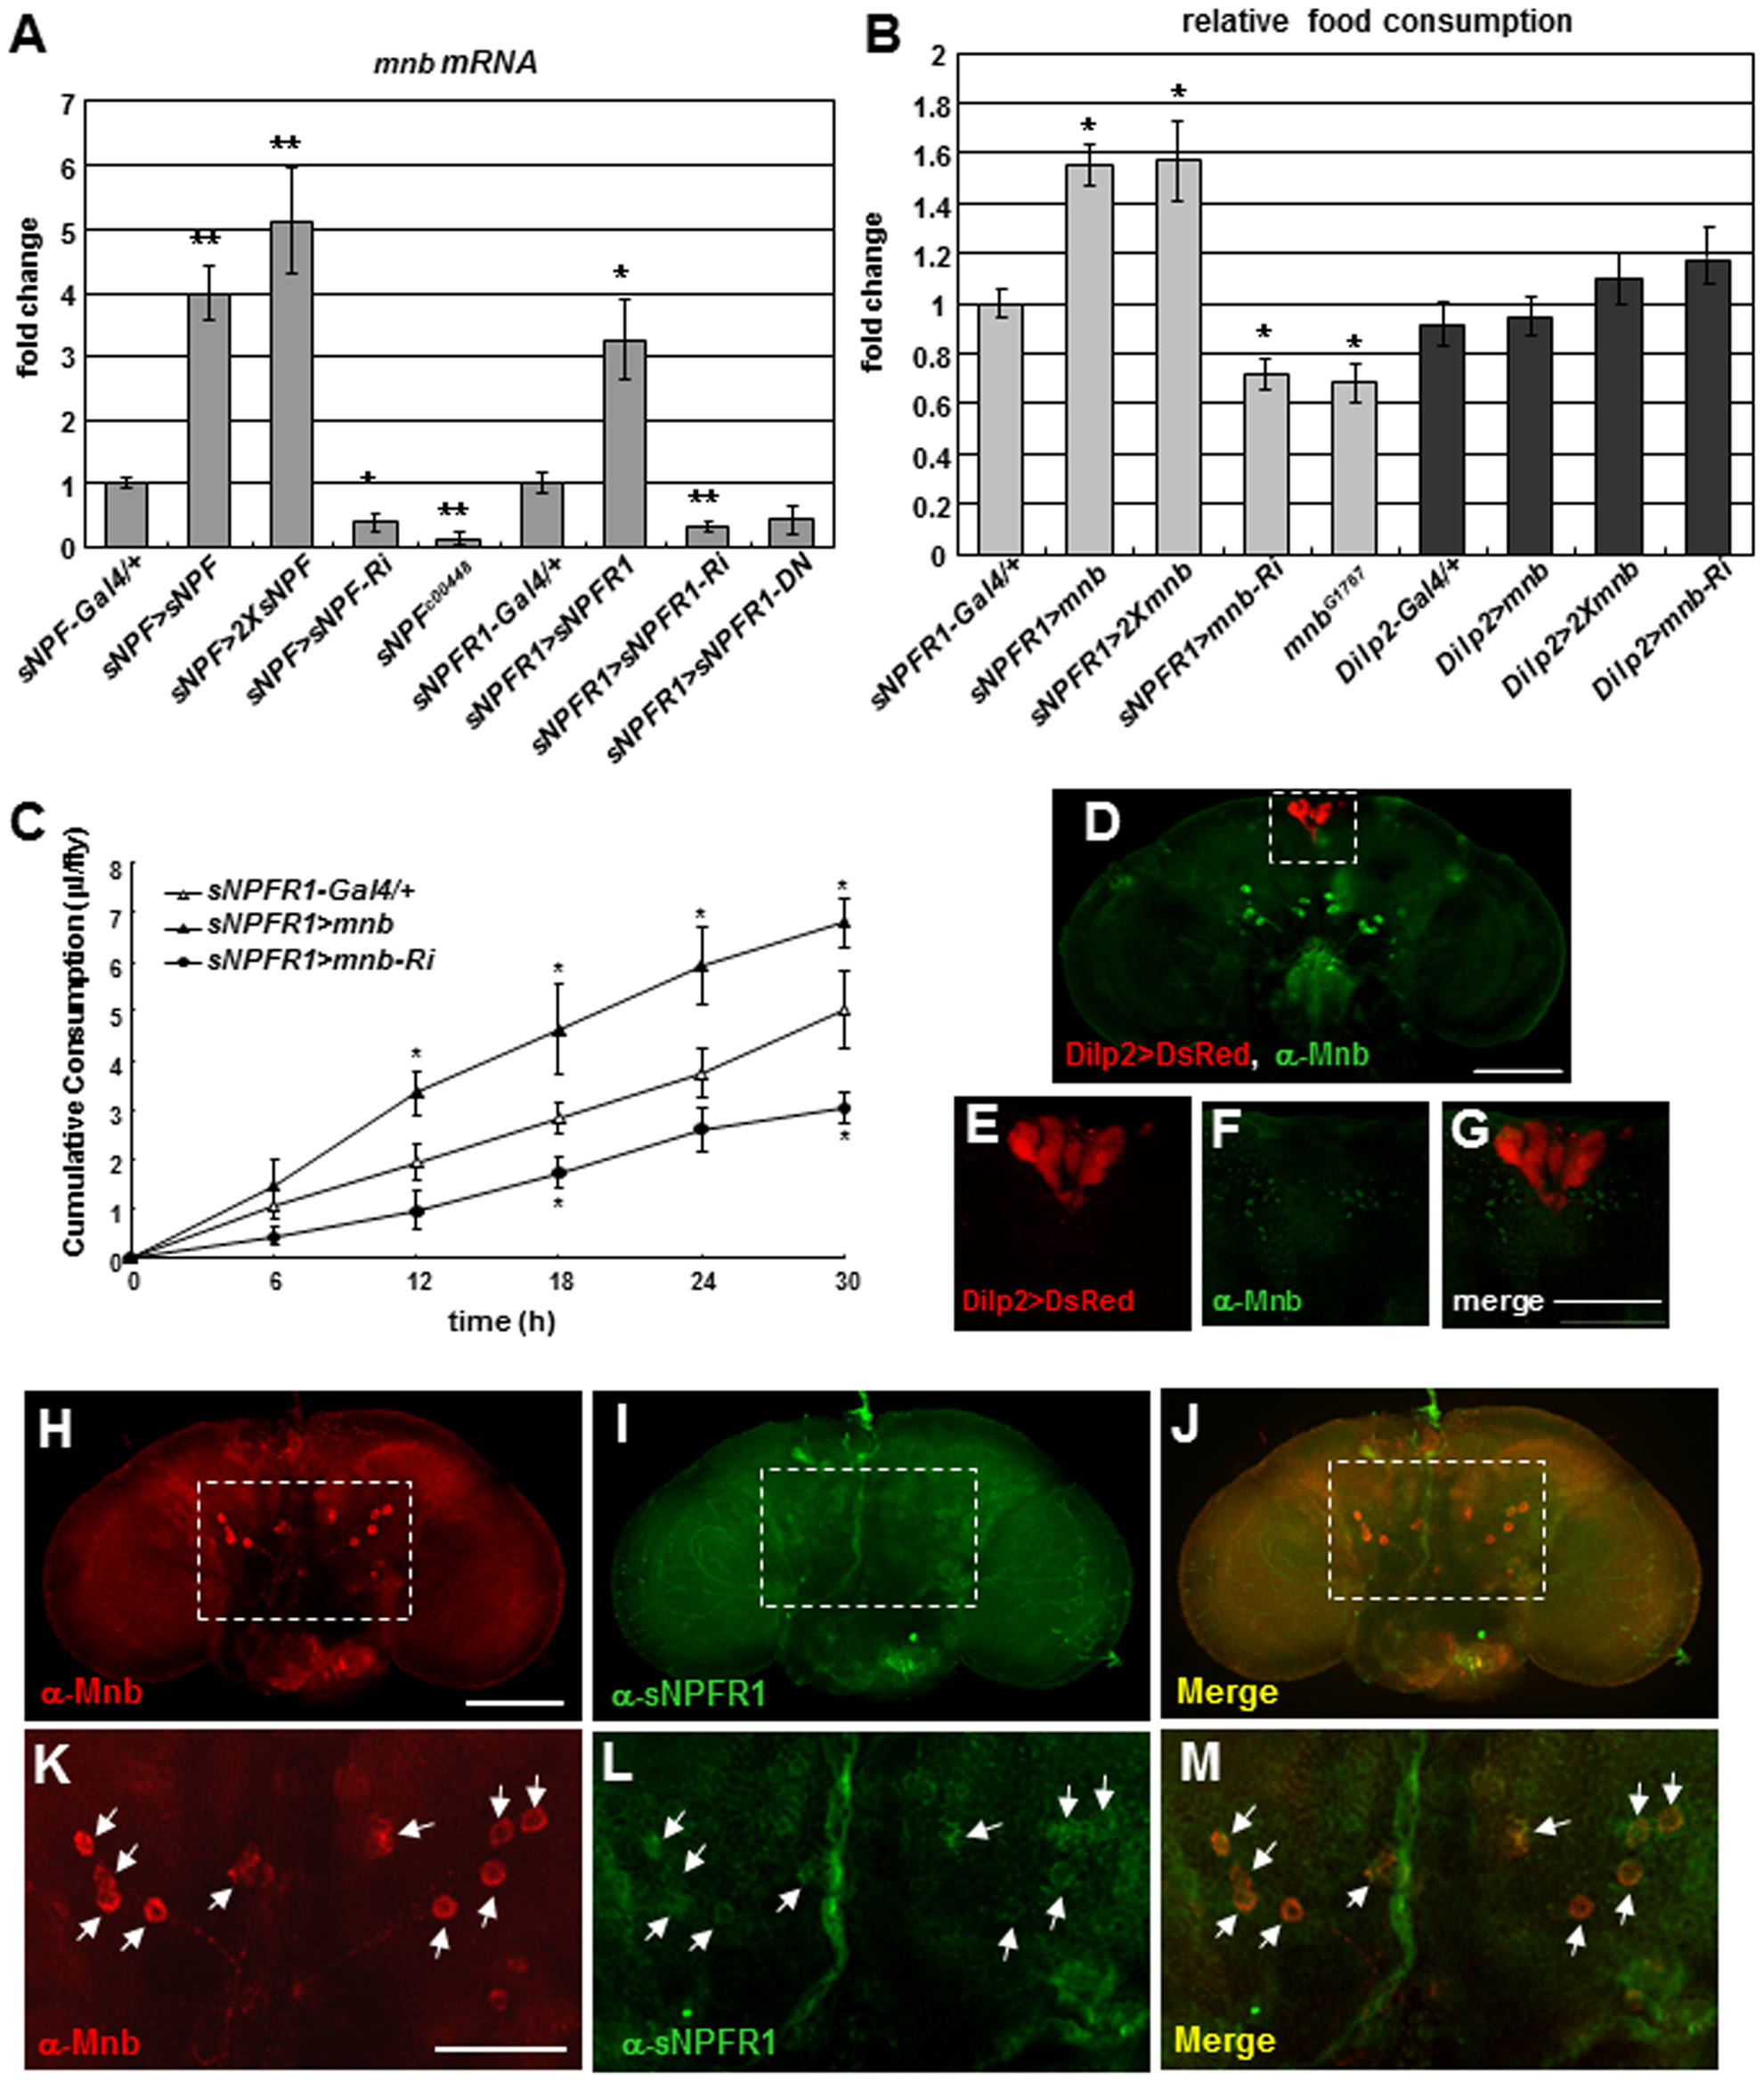 Expression and distribution of <i>Drosophila mnb</i> in adults in relation to <i>sNPF</i>, <i>sNPFR1</i>, and feeding.